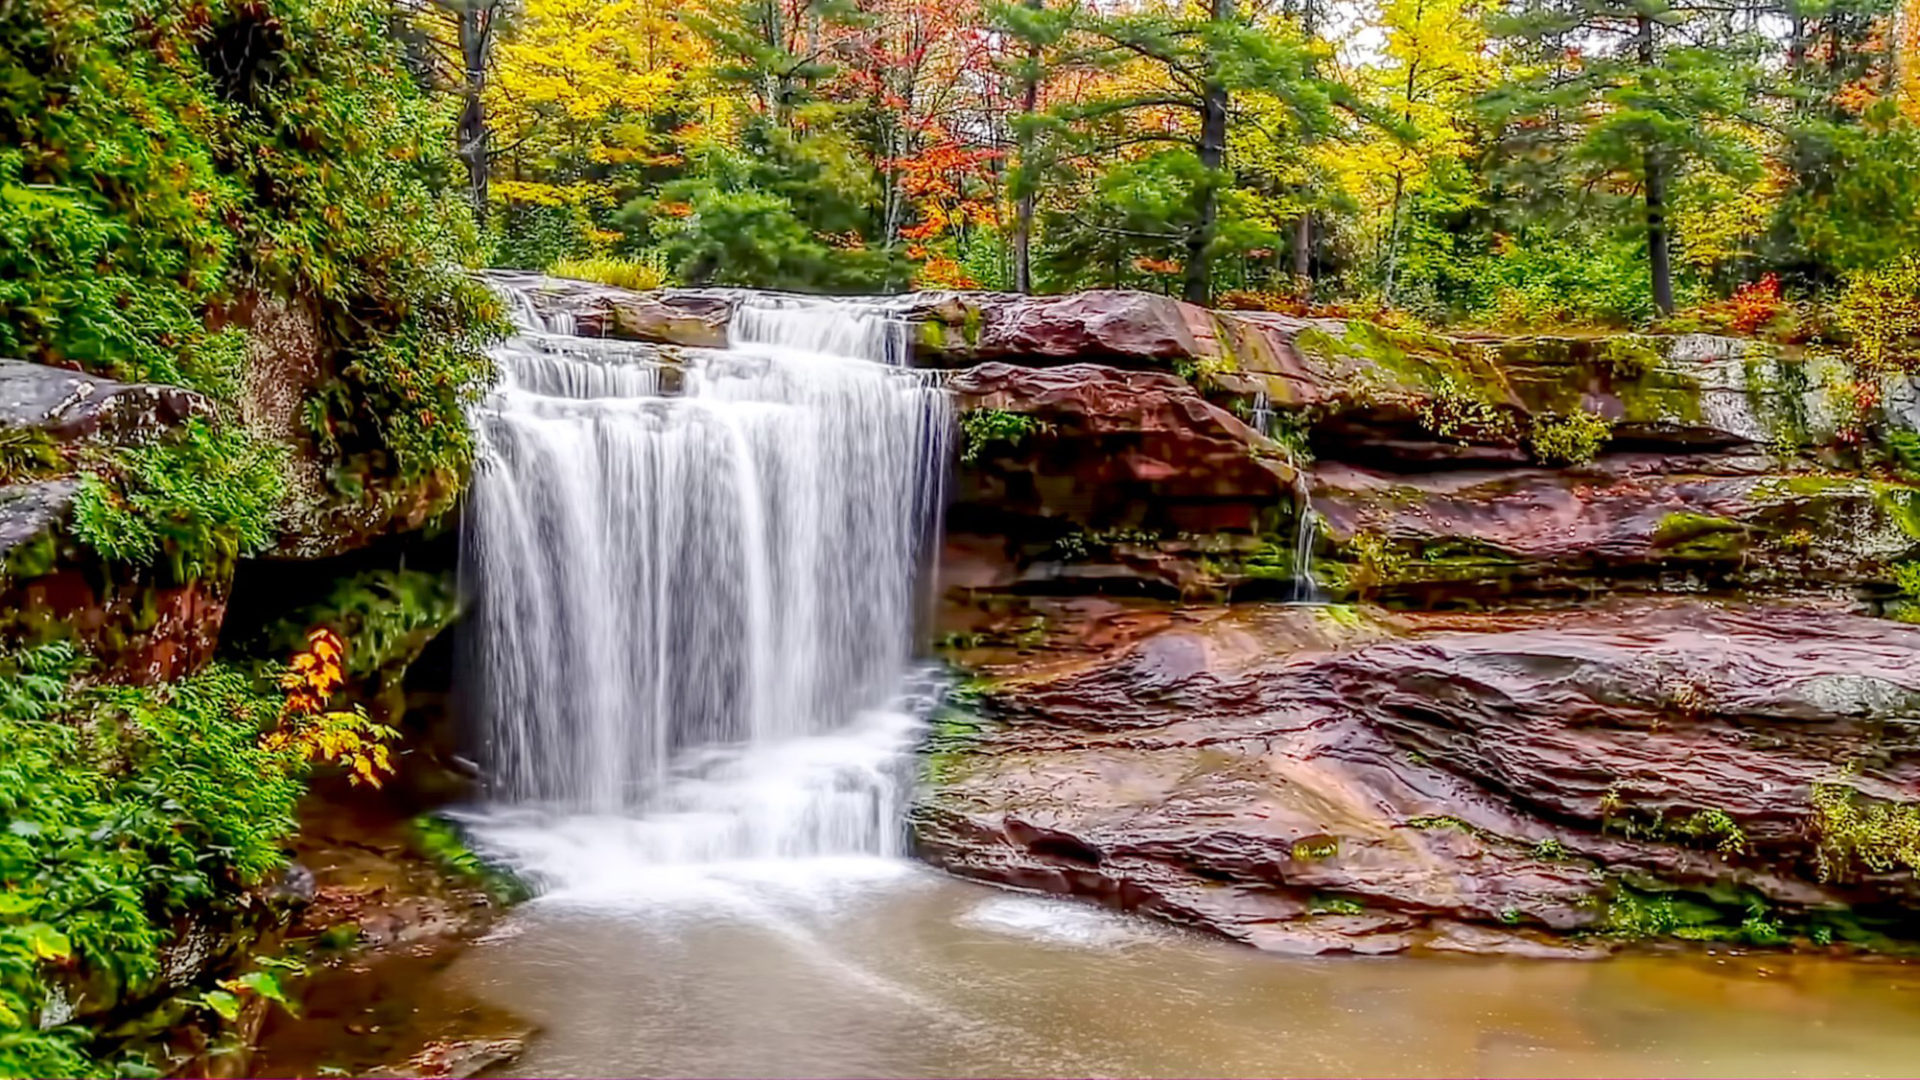 Fall Wallpapers For Tablet Stream Cascade Forest Falls Brown Rocks Surrounded By